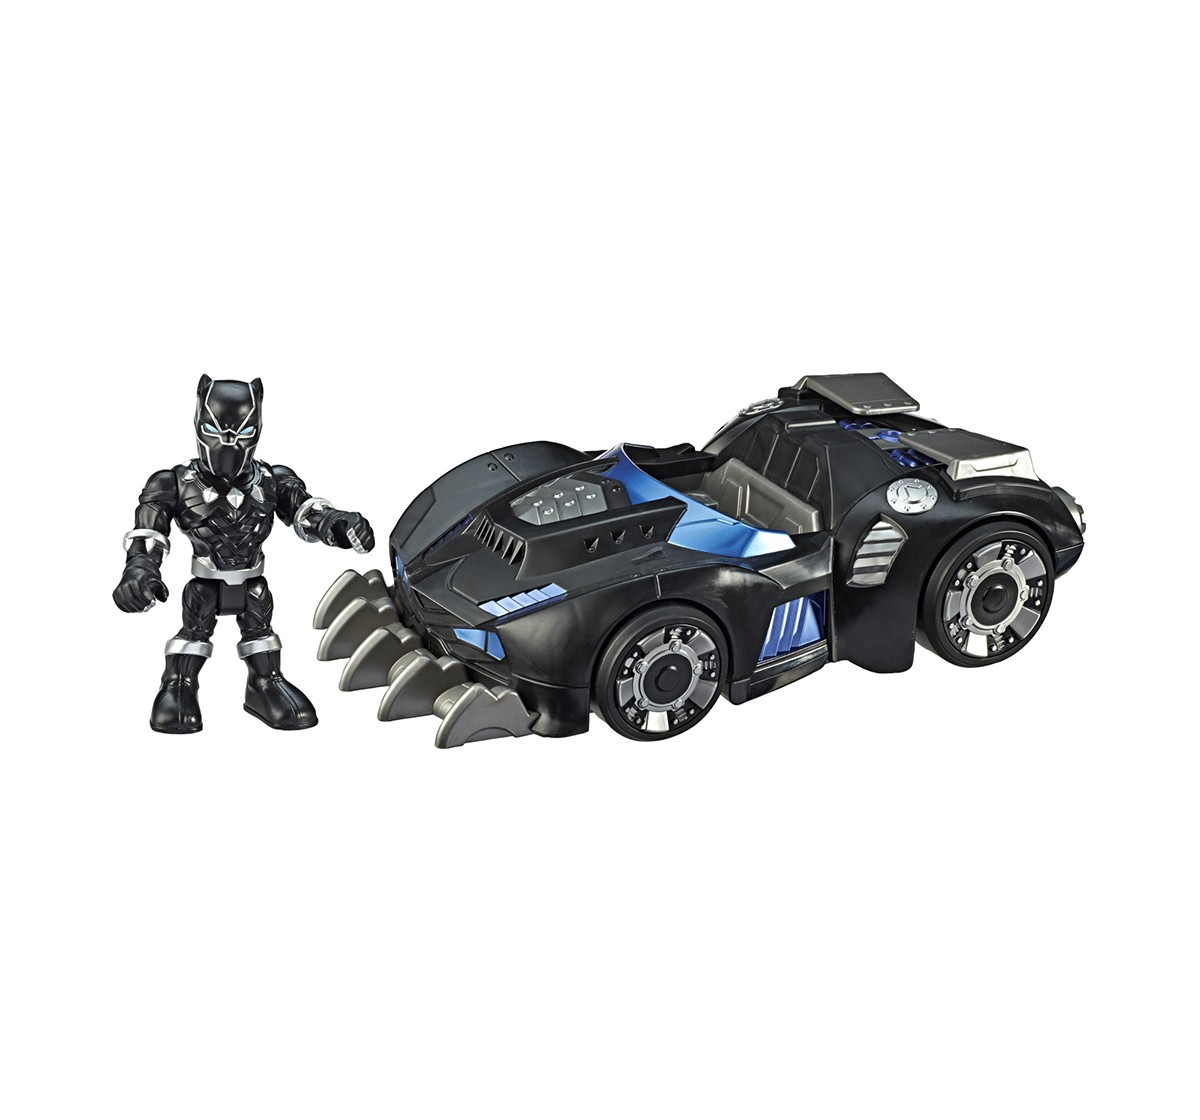 Superhero Adventure Black Panther Road Racer Assorted Activity Toys for Boys age 3Y+ (Black)